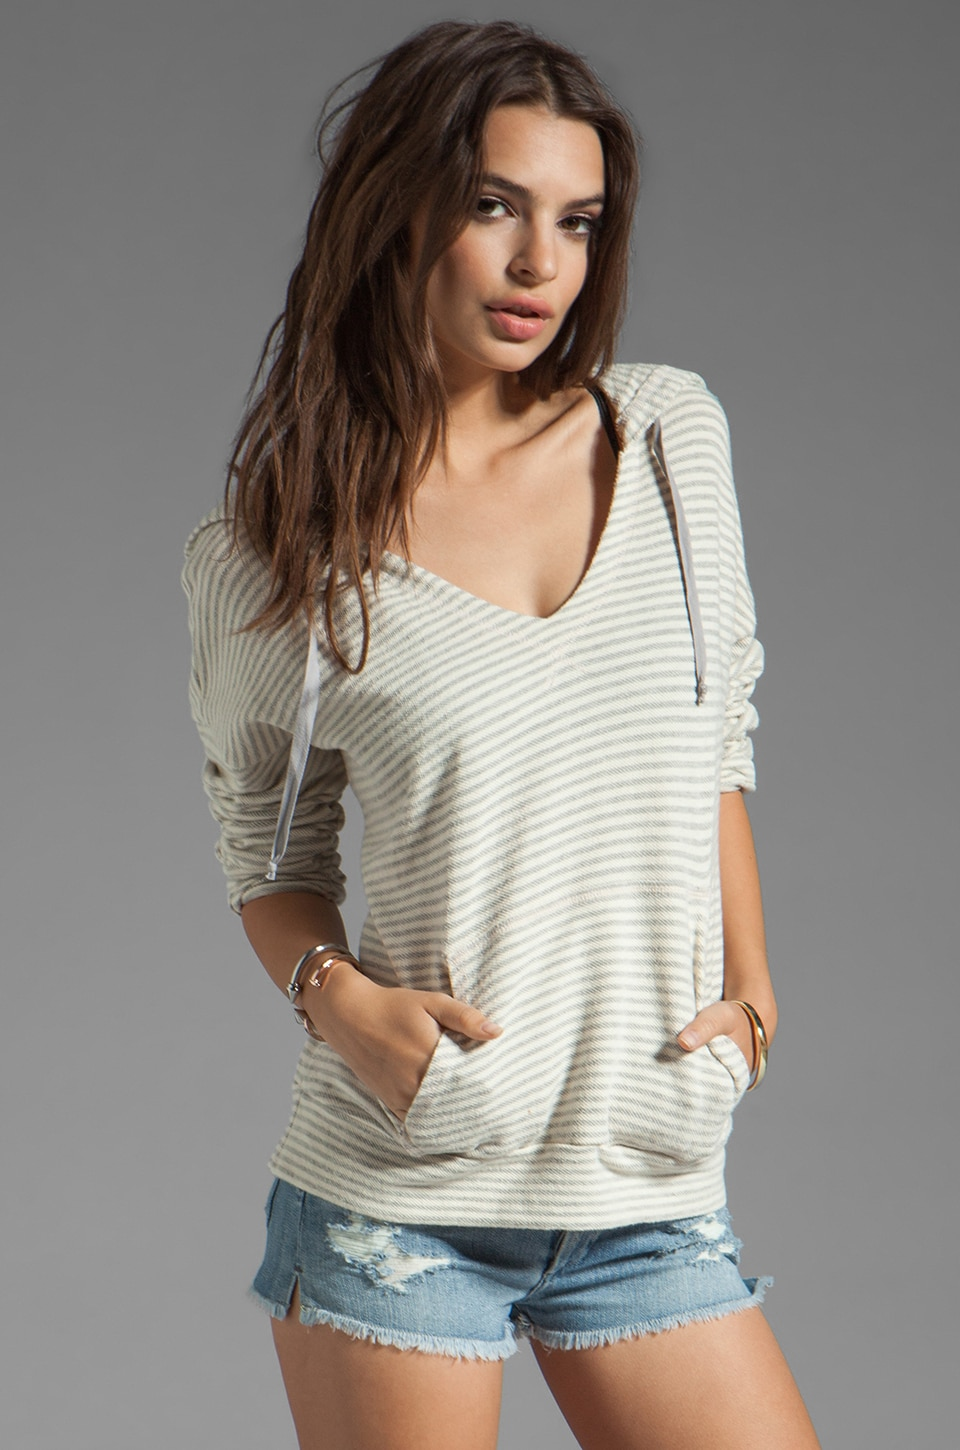 Soft Joie Evita Striped Hoodie in Heather Grey